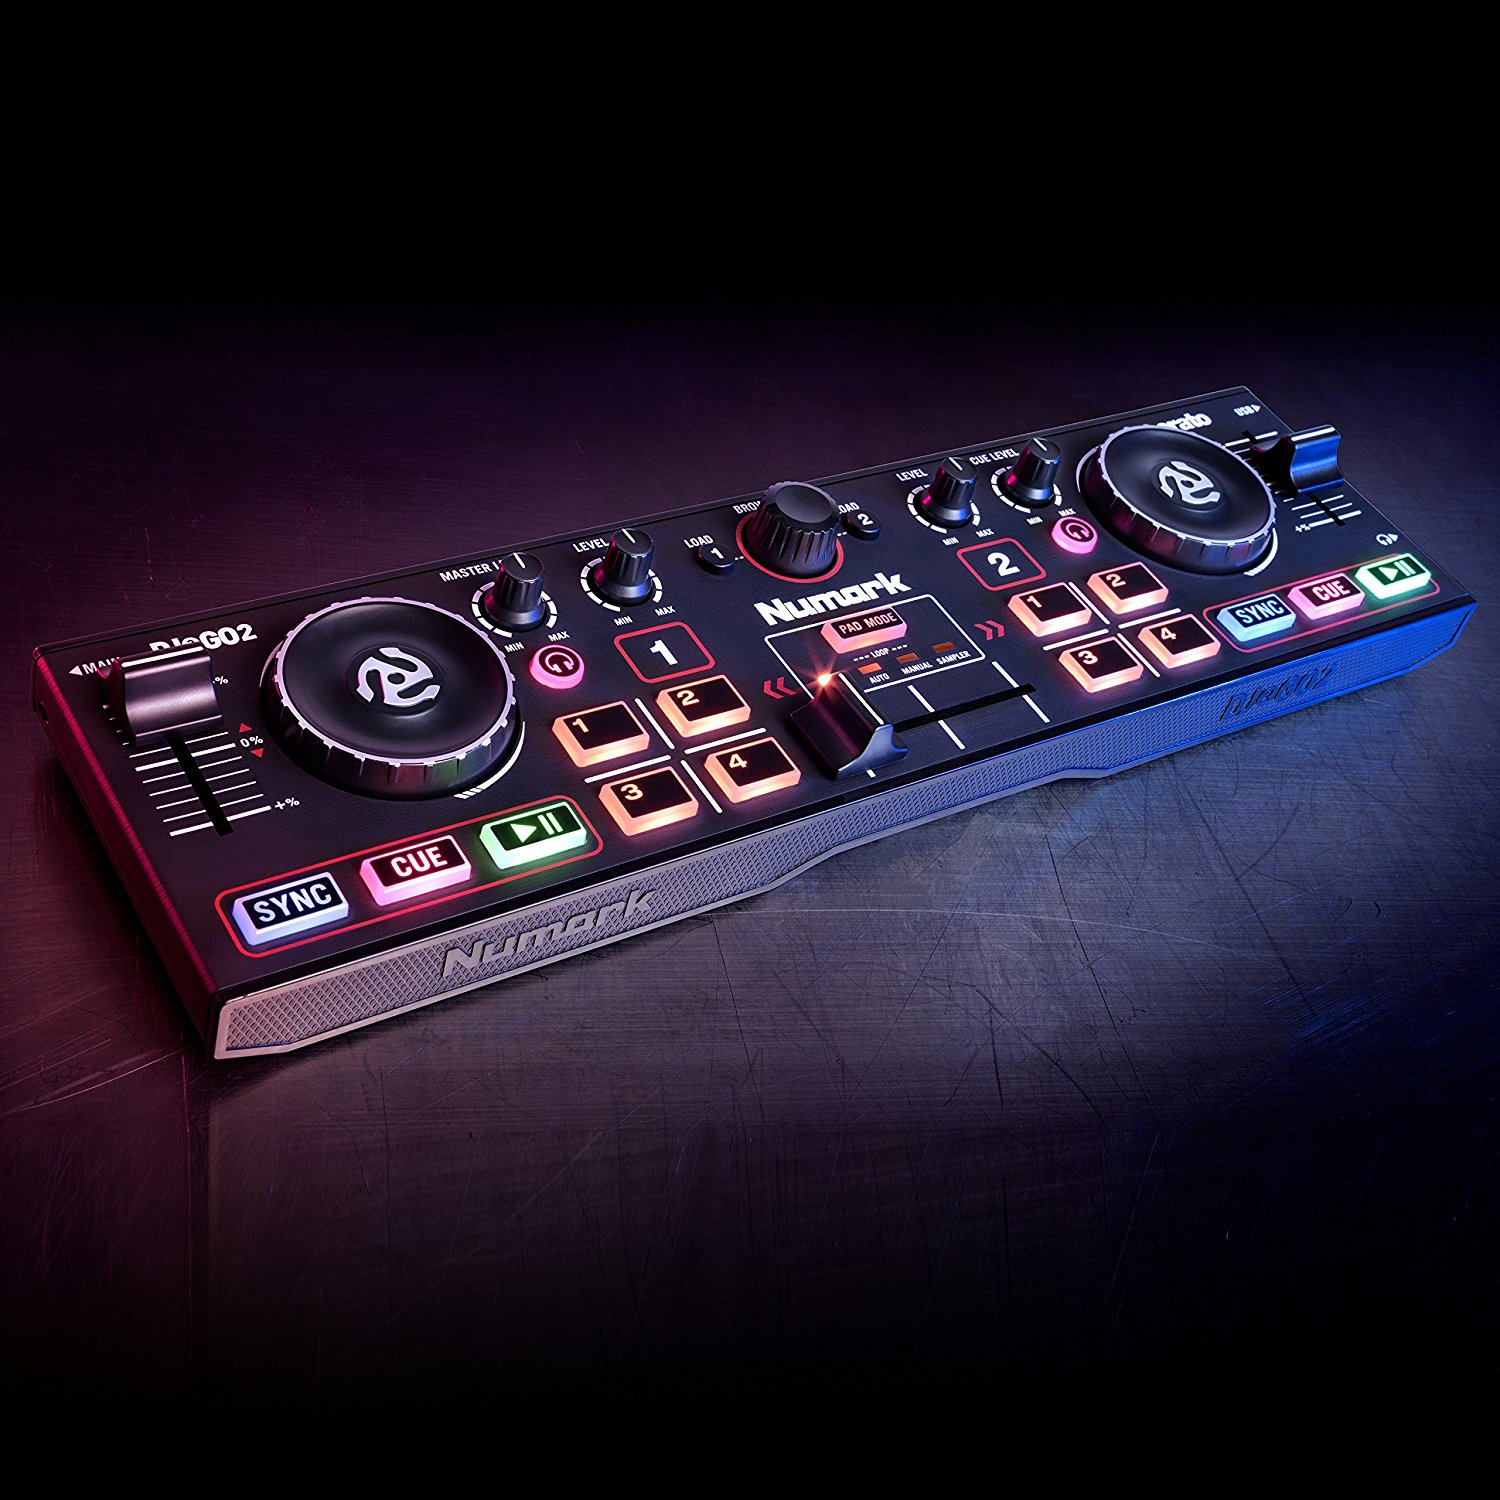 10 DJ gifts with under $100